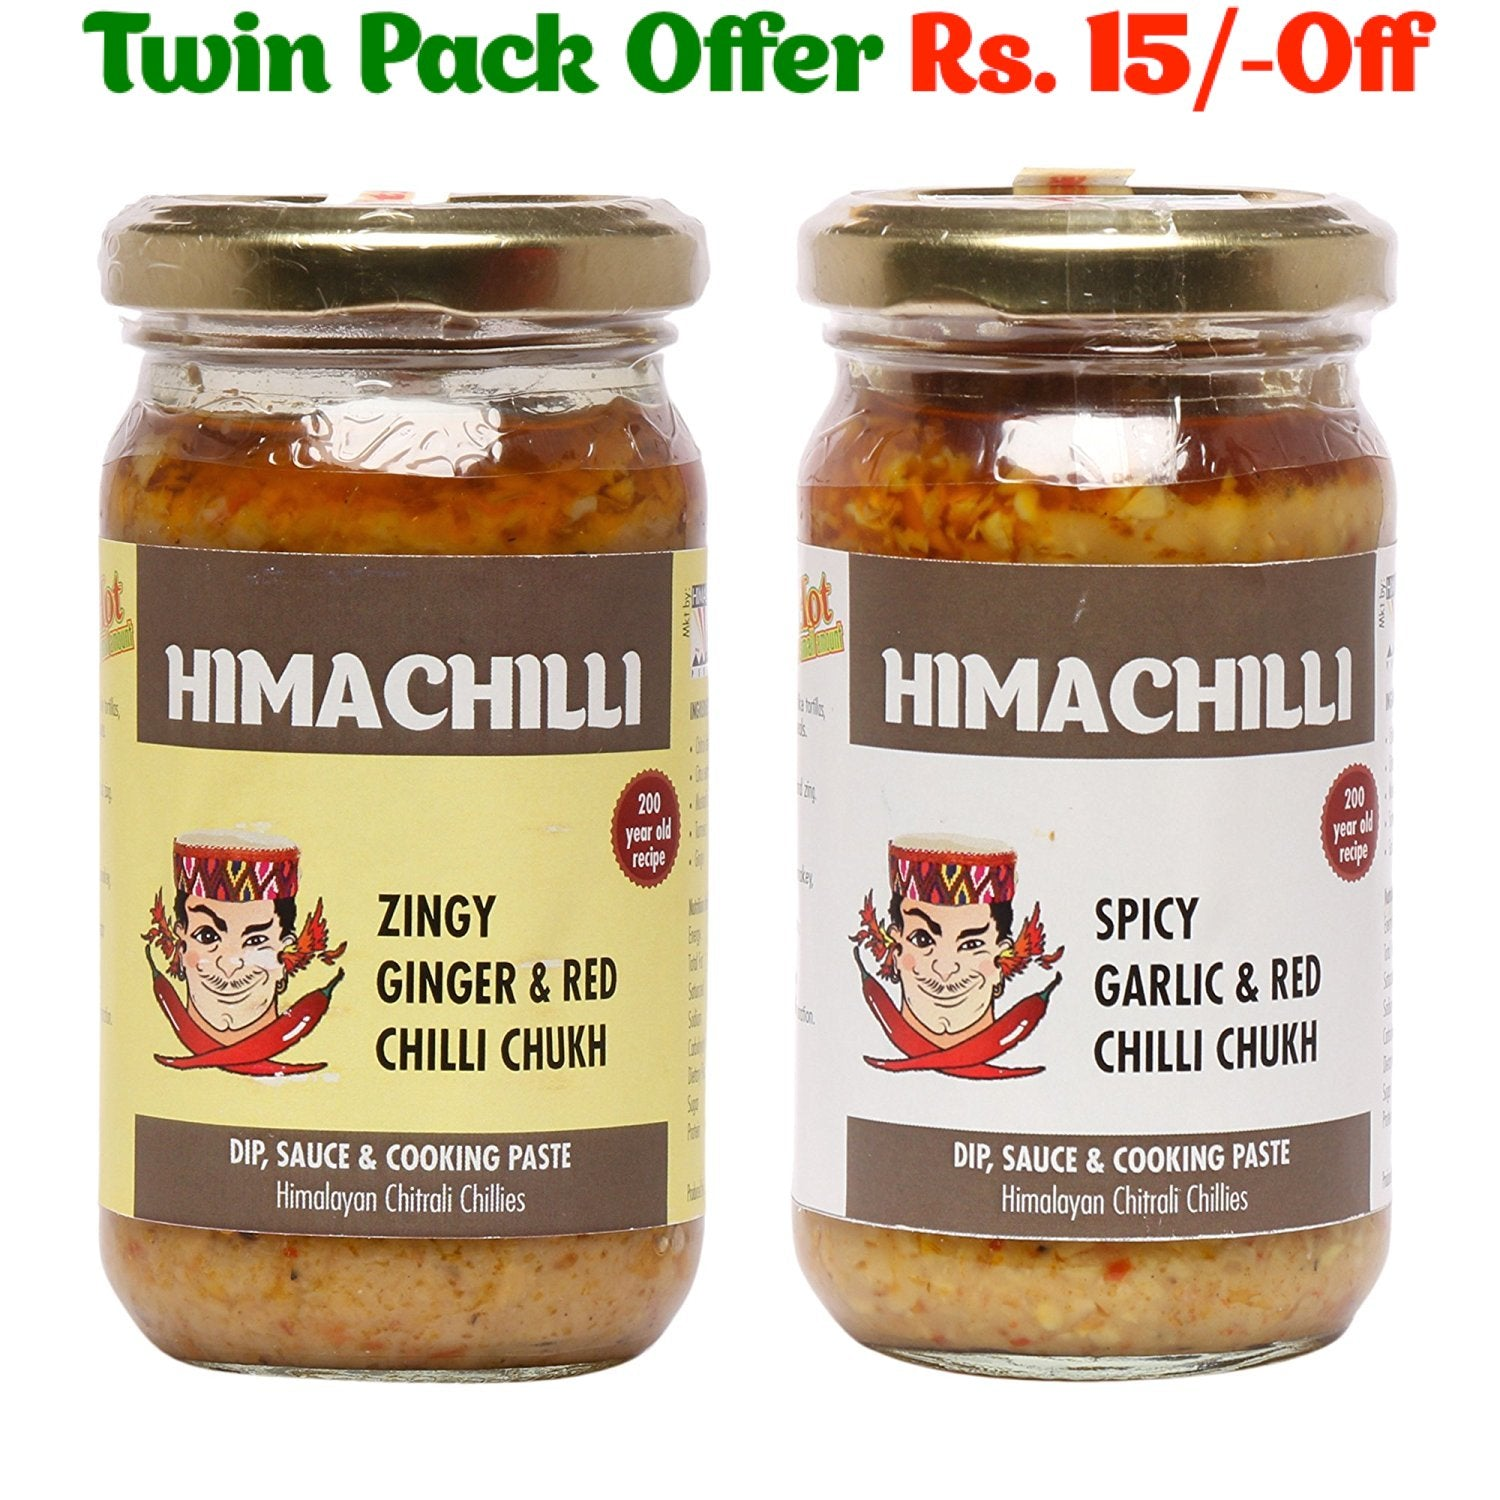 Chilli Dip, Garlic Chilli Dip, Chilli Marinade, Hot Sauce, Chilli Pickle, very hot Pickles, Chilli Paste, Chamba Chukh, Ginger Chilli Paste, Garlic Paste, Chilli Garlic Paste, Garlic Marinade, Ginger Garlic Chilli, Ginger Garlic paste, Curry paste